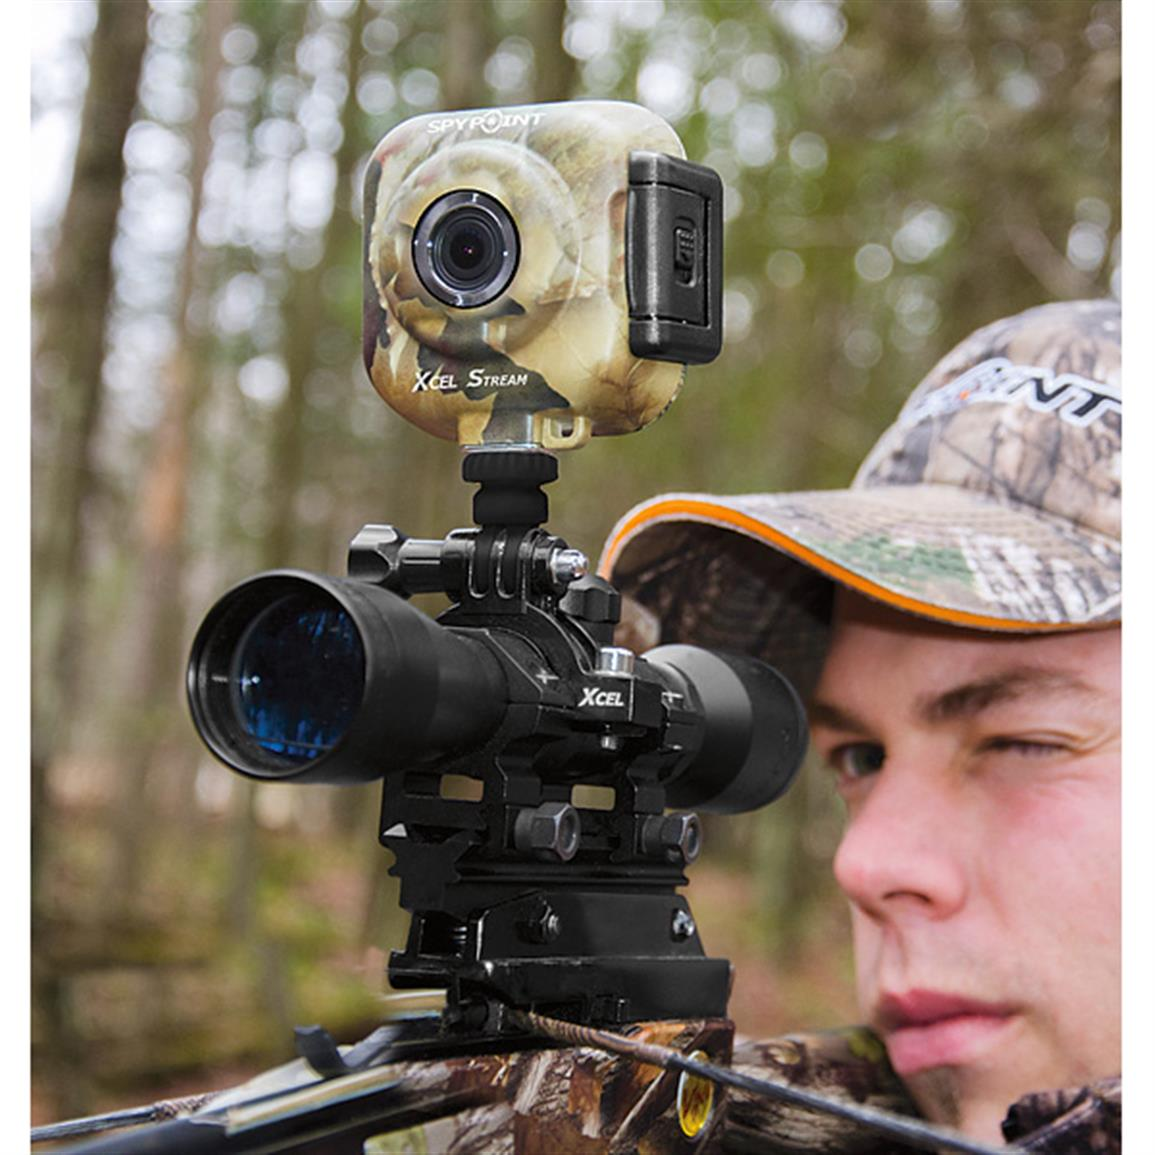 Hands-free recording of your hunt!